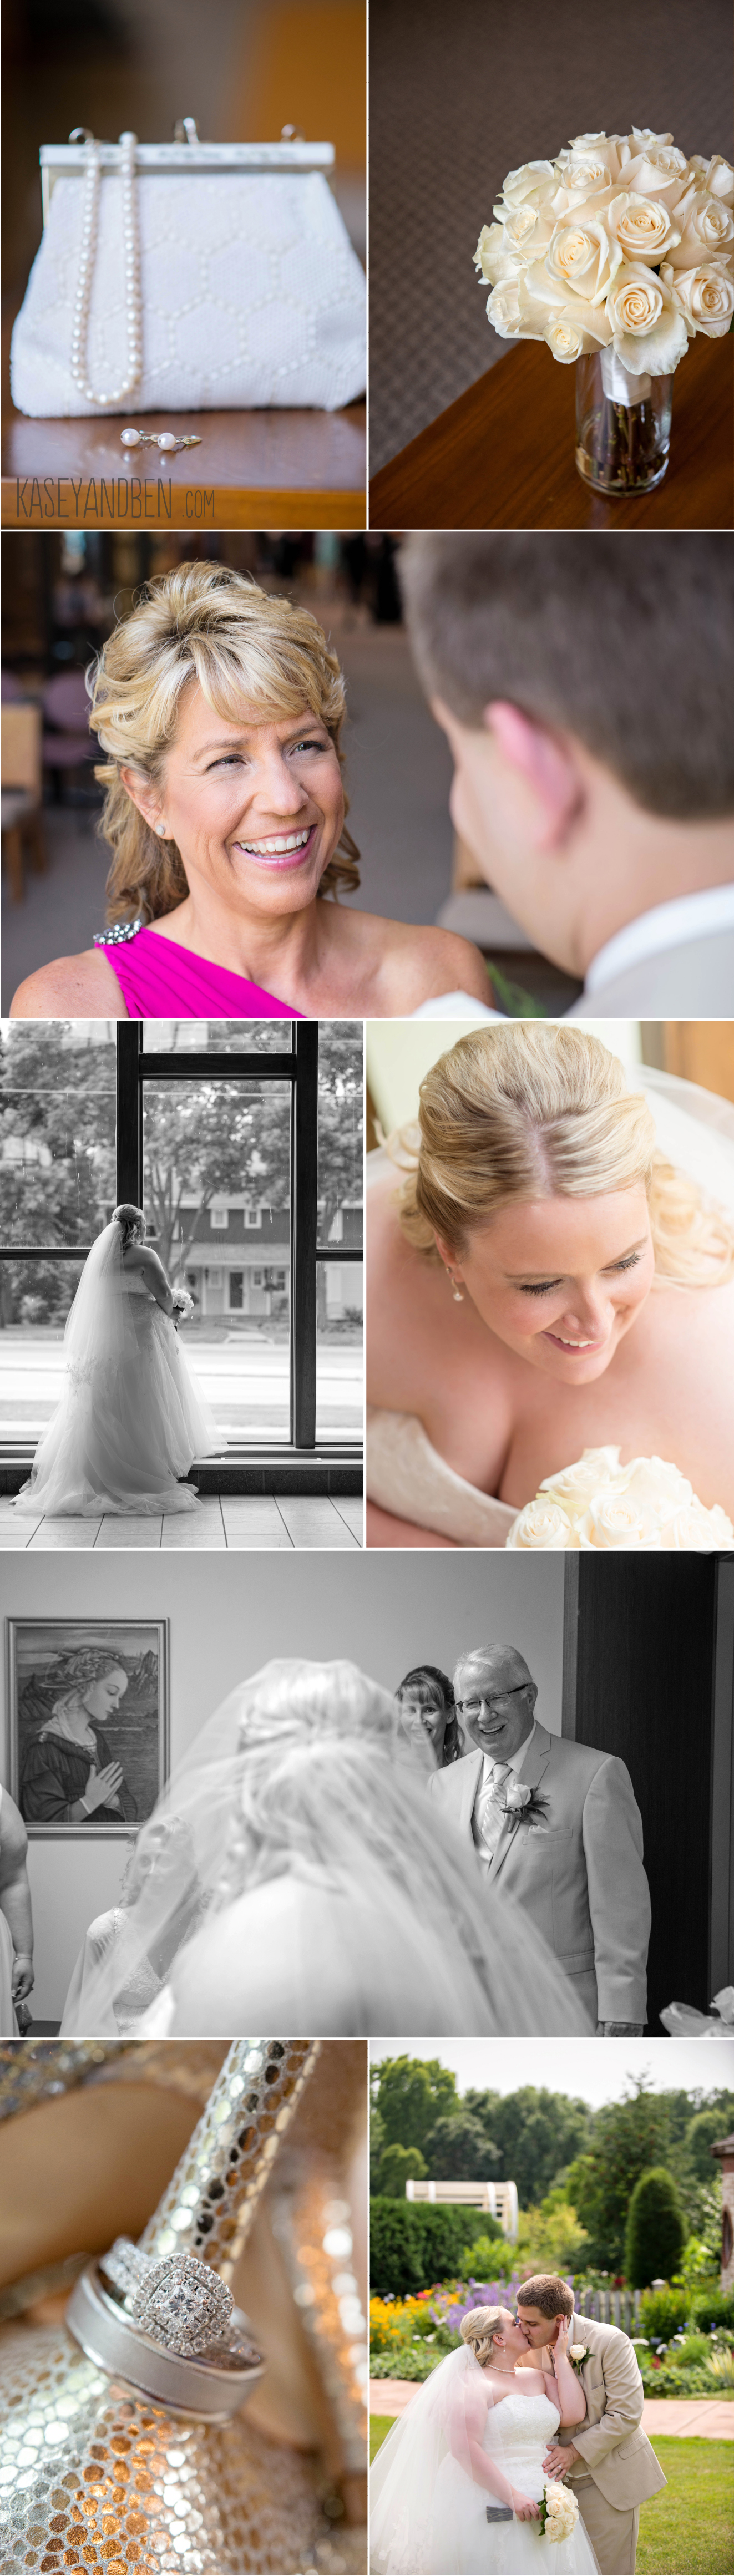 Green-Bay-Botanical-Gardens-Wedding-Lambeau-Field-Photographer-Photography-Bride-summer1